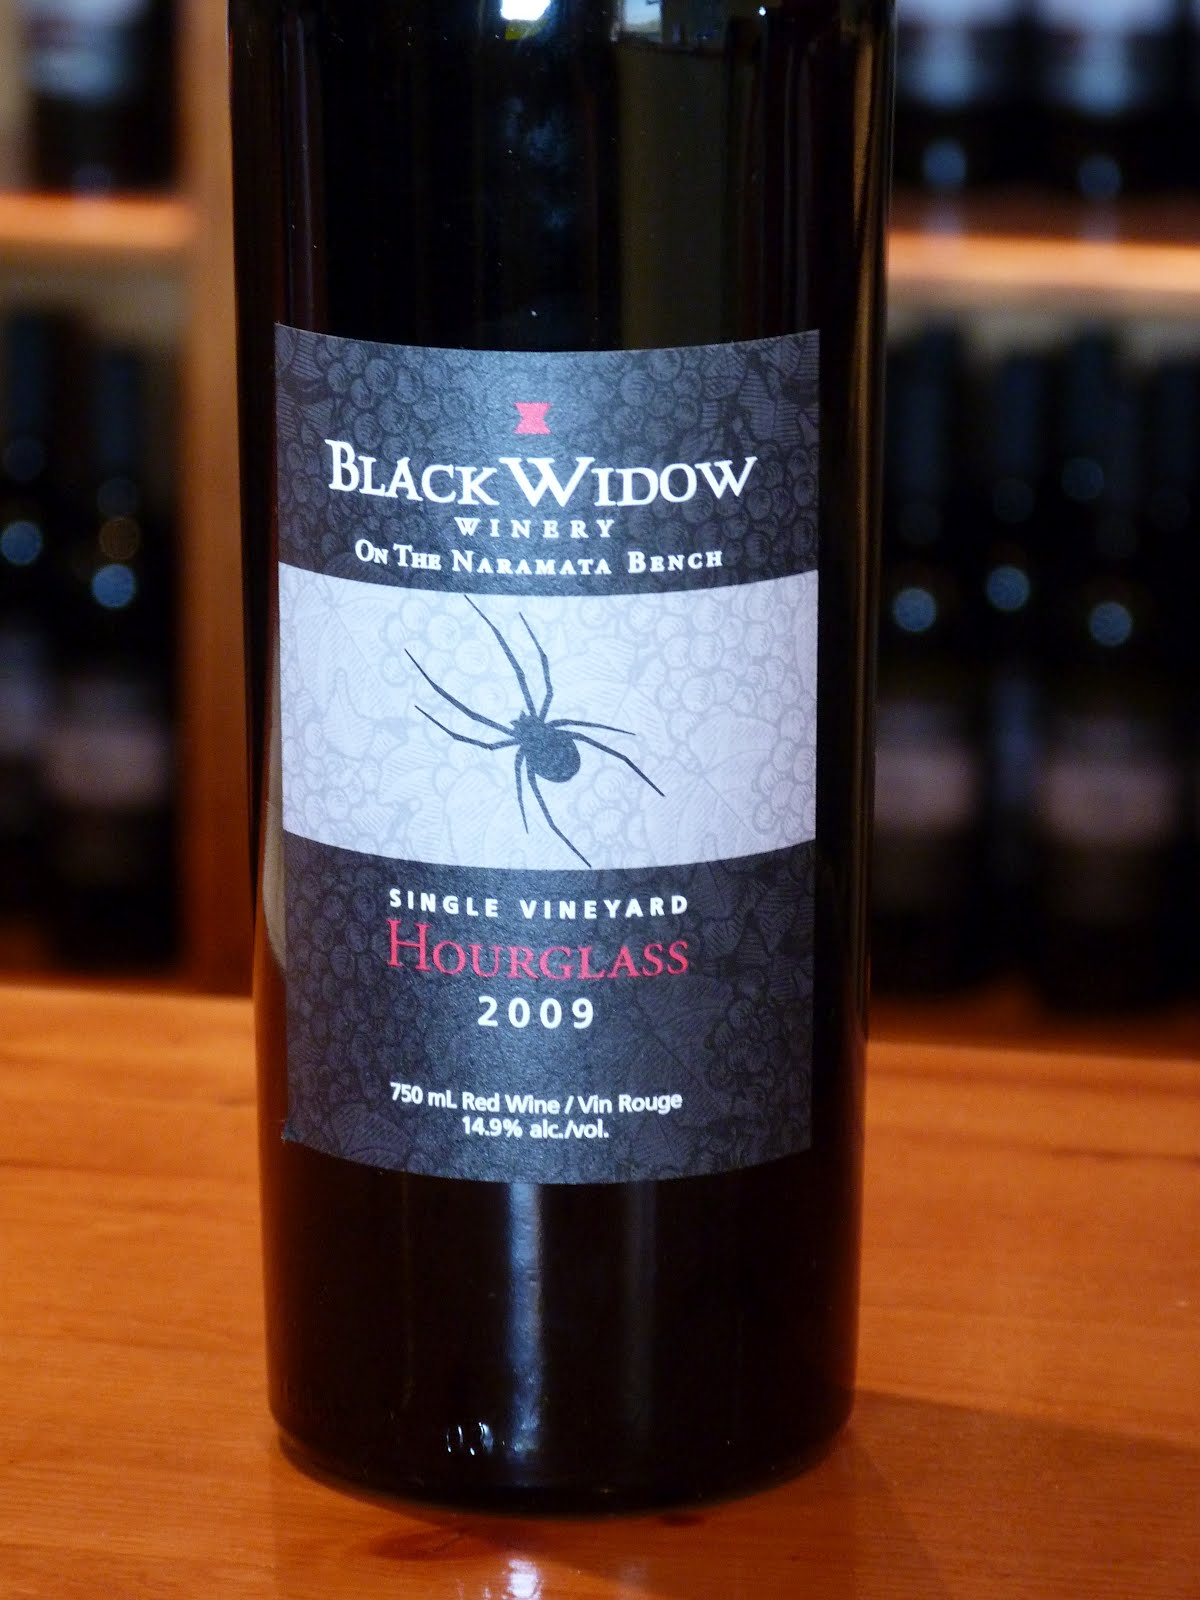 This Is The Winery S Signature Red In Vintage It 80 Merlot 20 Cabernet Sauvignon Flavours Are Bold And Ripe Including Black Currants